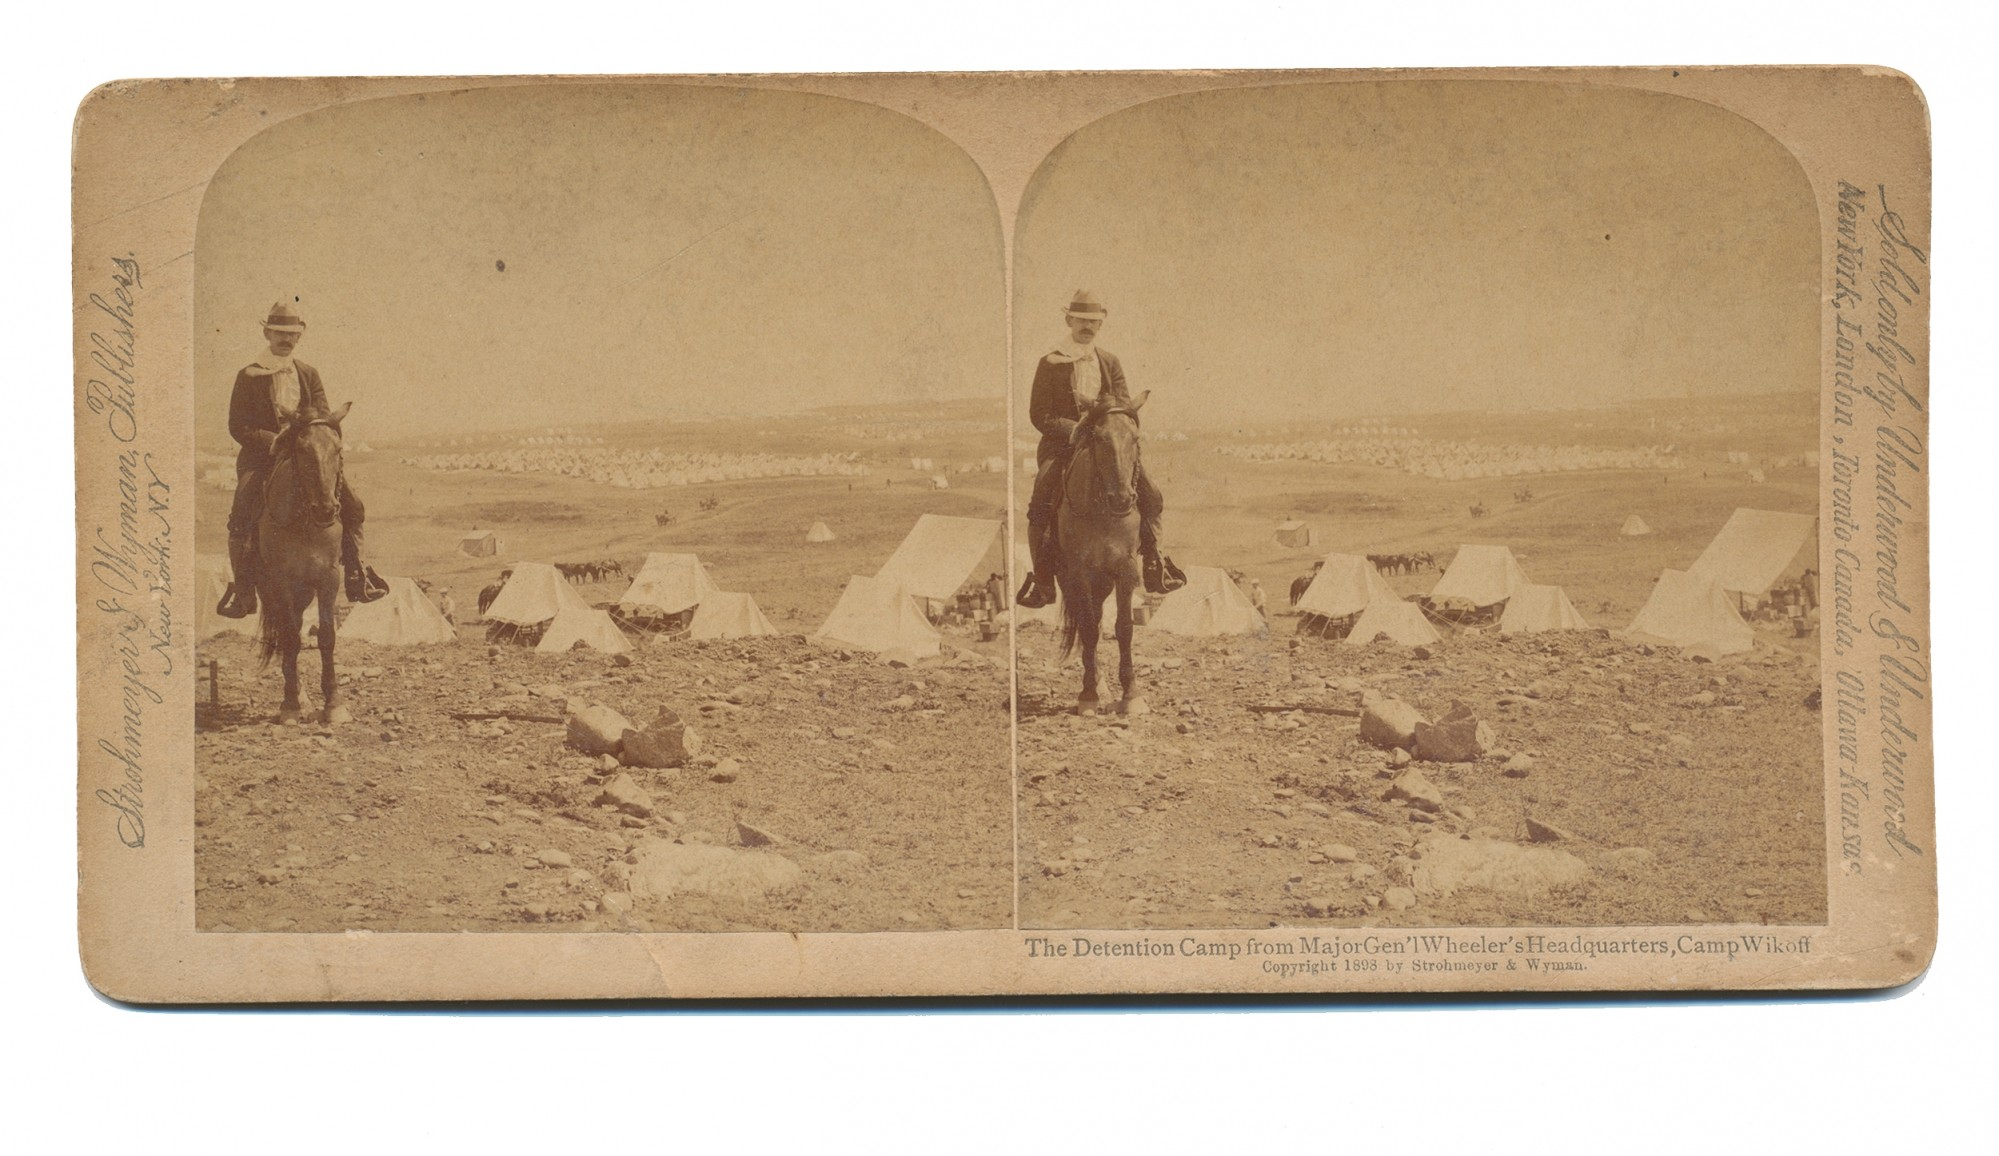 STEREOVIEW OF CAMP WIKOFF AT MAJOR GENERAL JOSEPH WHEELER'S HEADQUARTERS